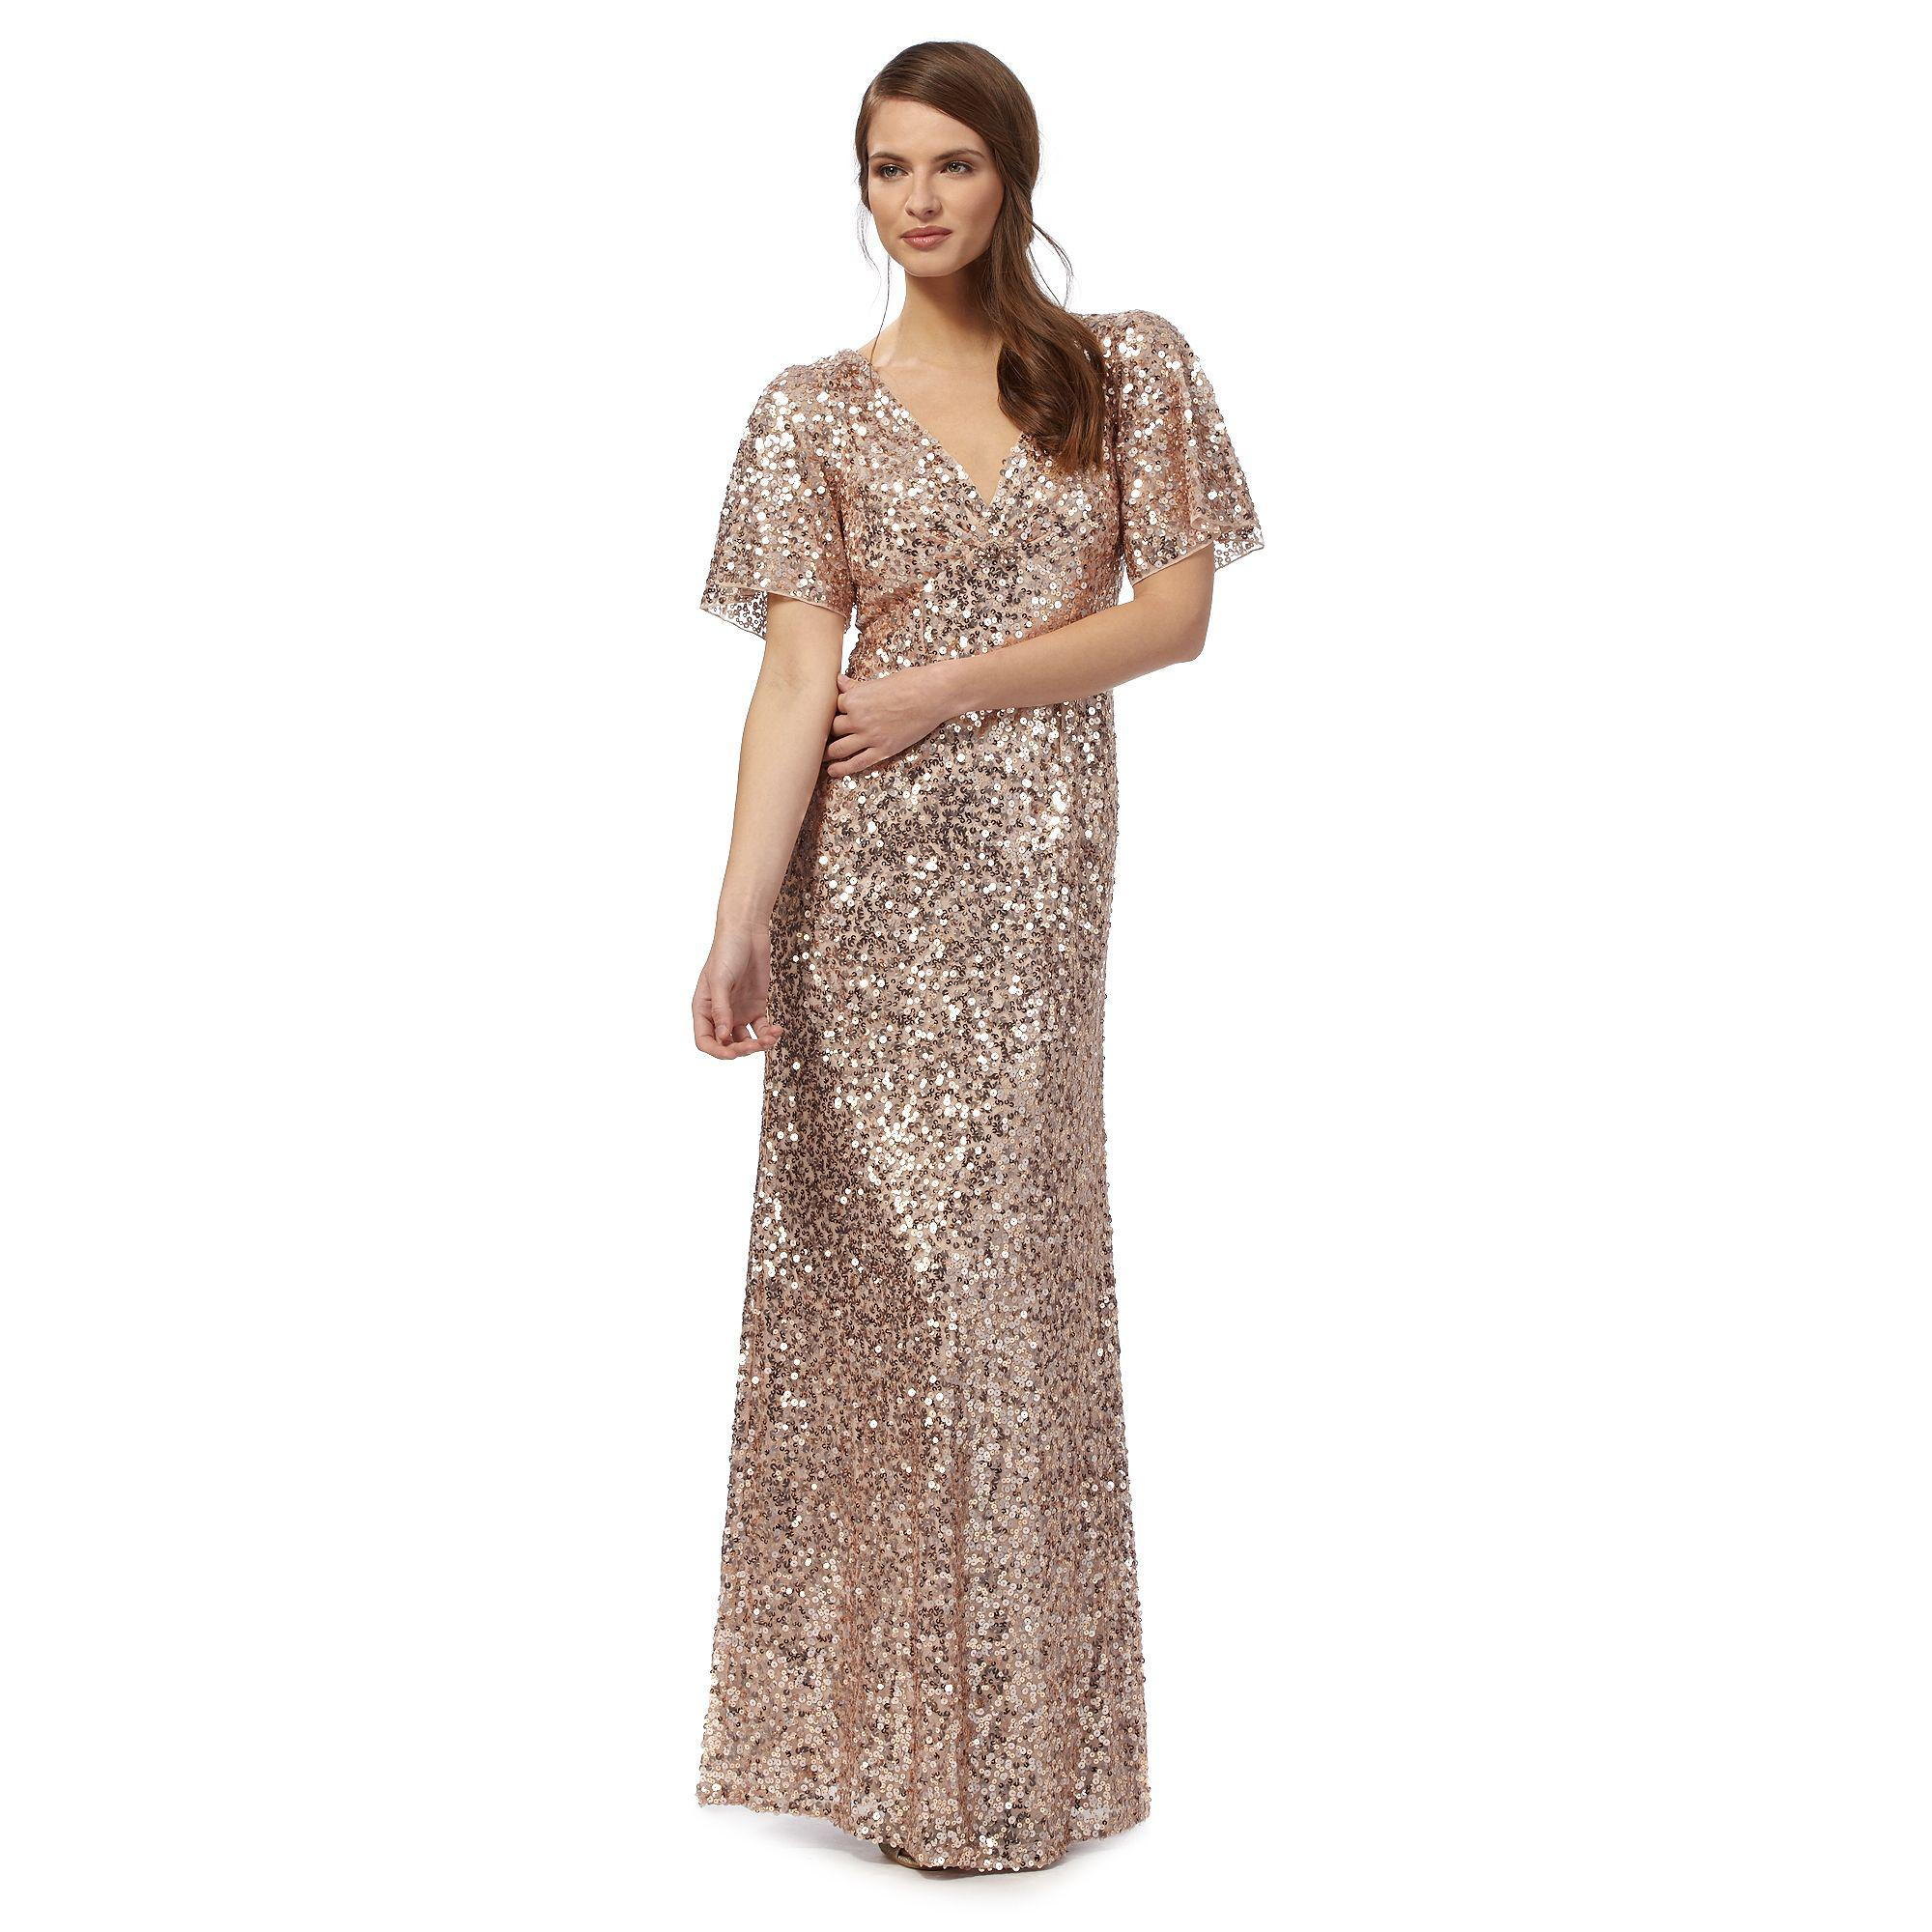 Jenny Packham Pink Embellished Carys V Neck Evening Dress In Inside Wedges Beige 39 View Fullscreen